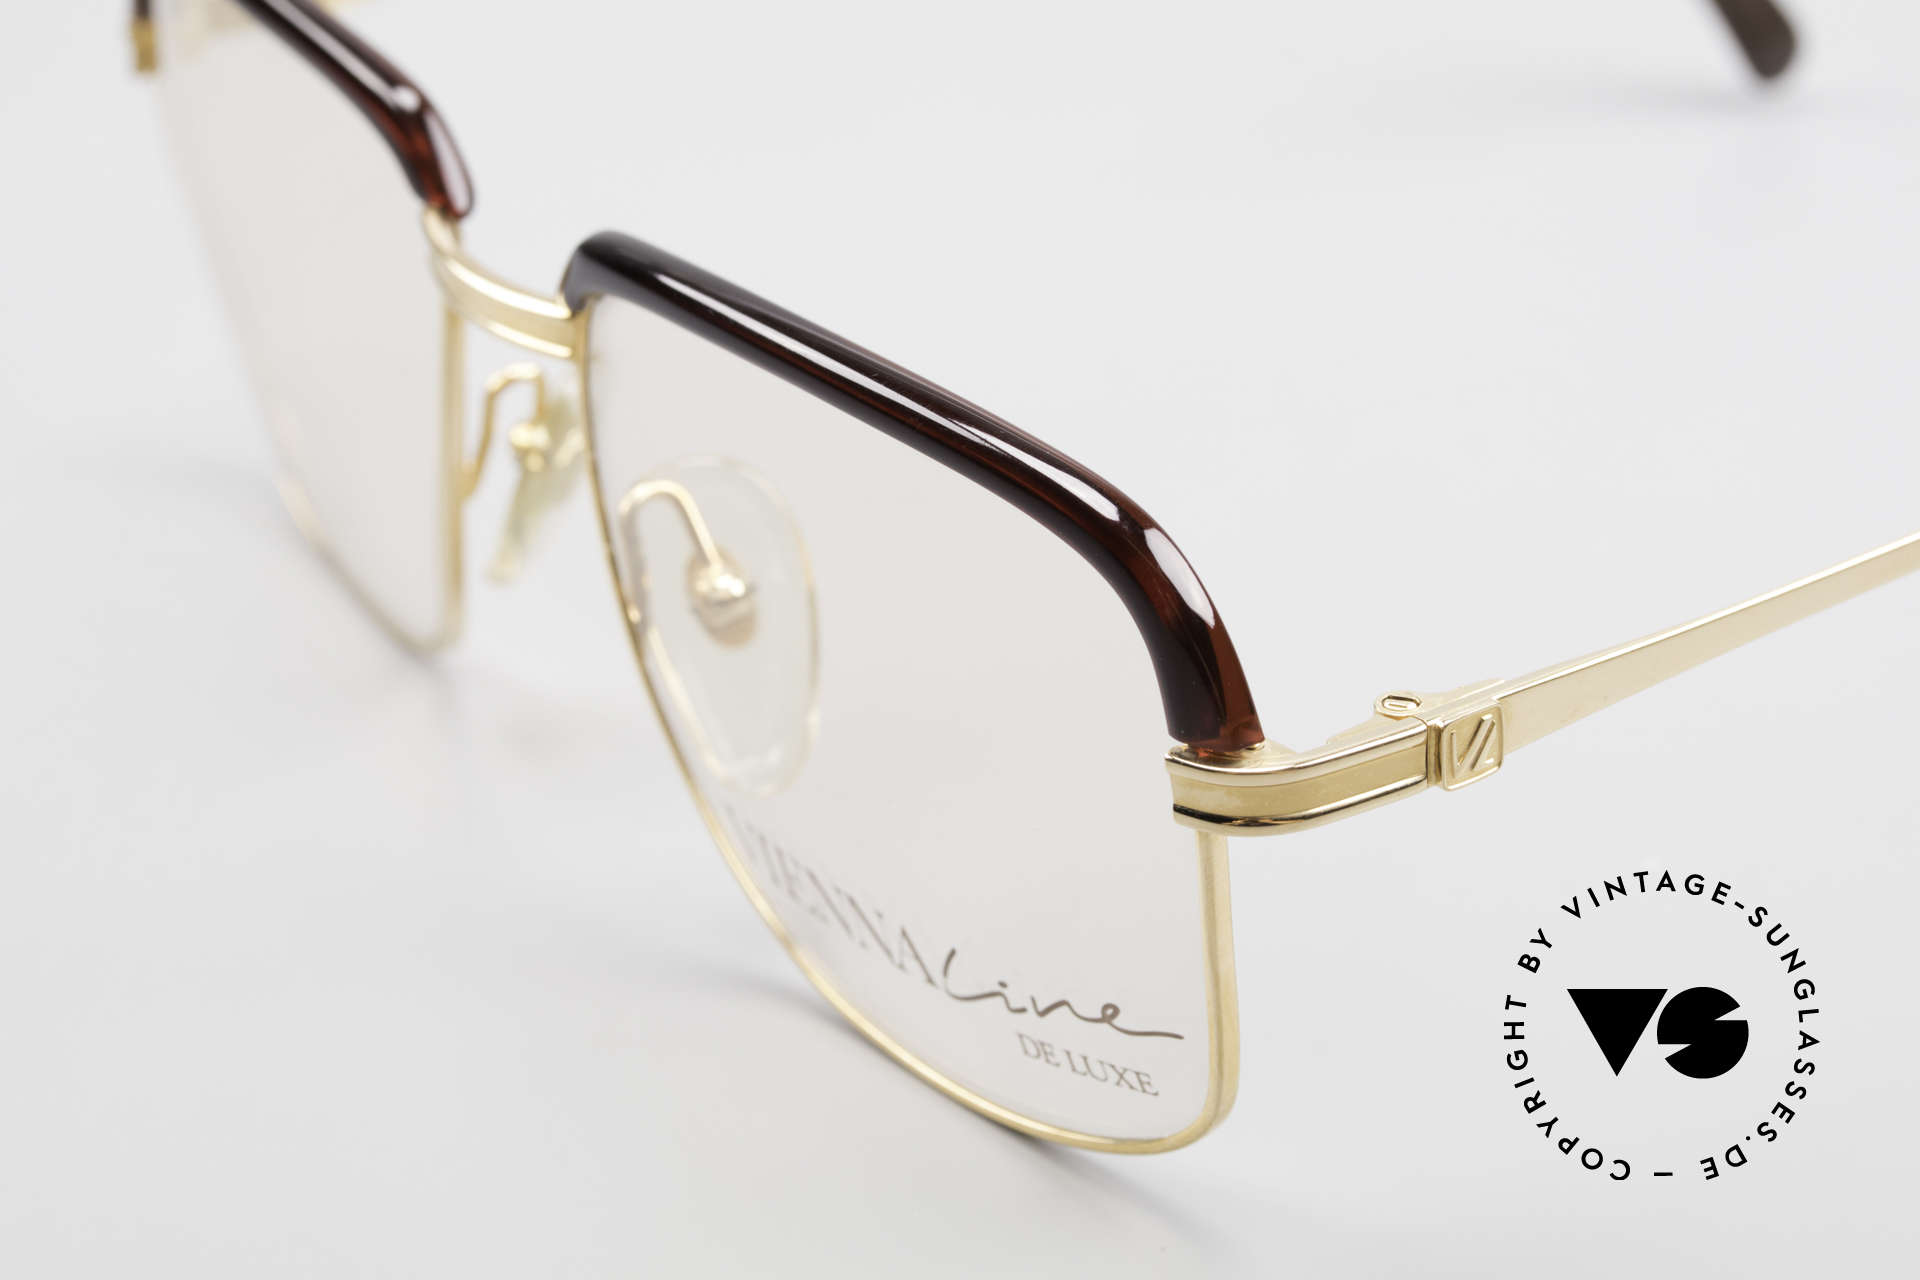 Vienna Line True 70's Men's Combi Frame, GOLD-PLATED frame (a matter of course, back then), Made for Men